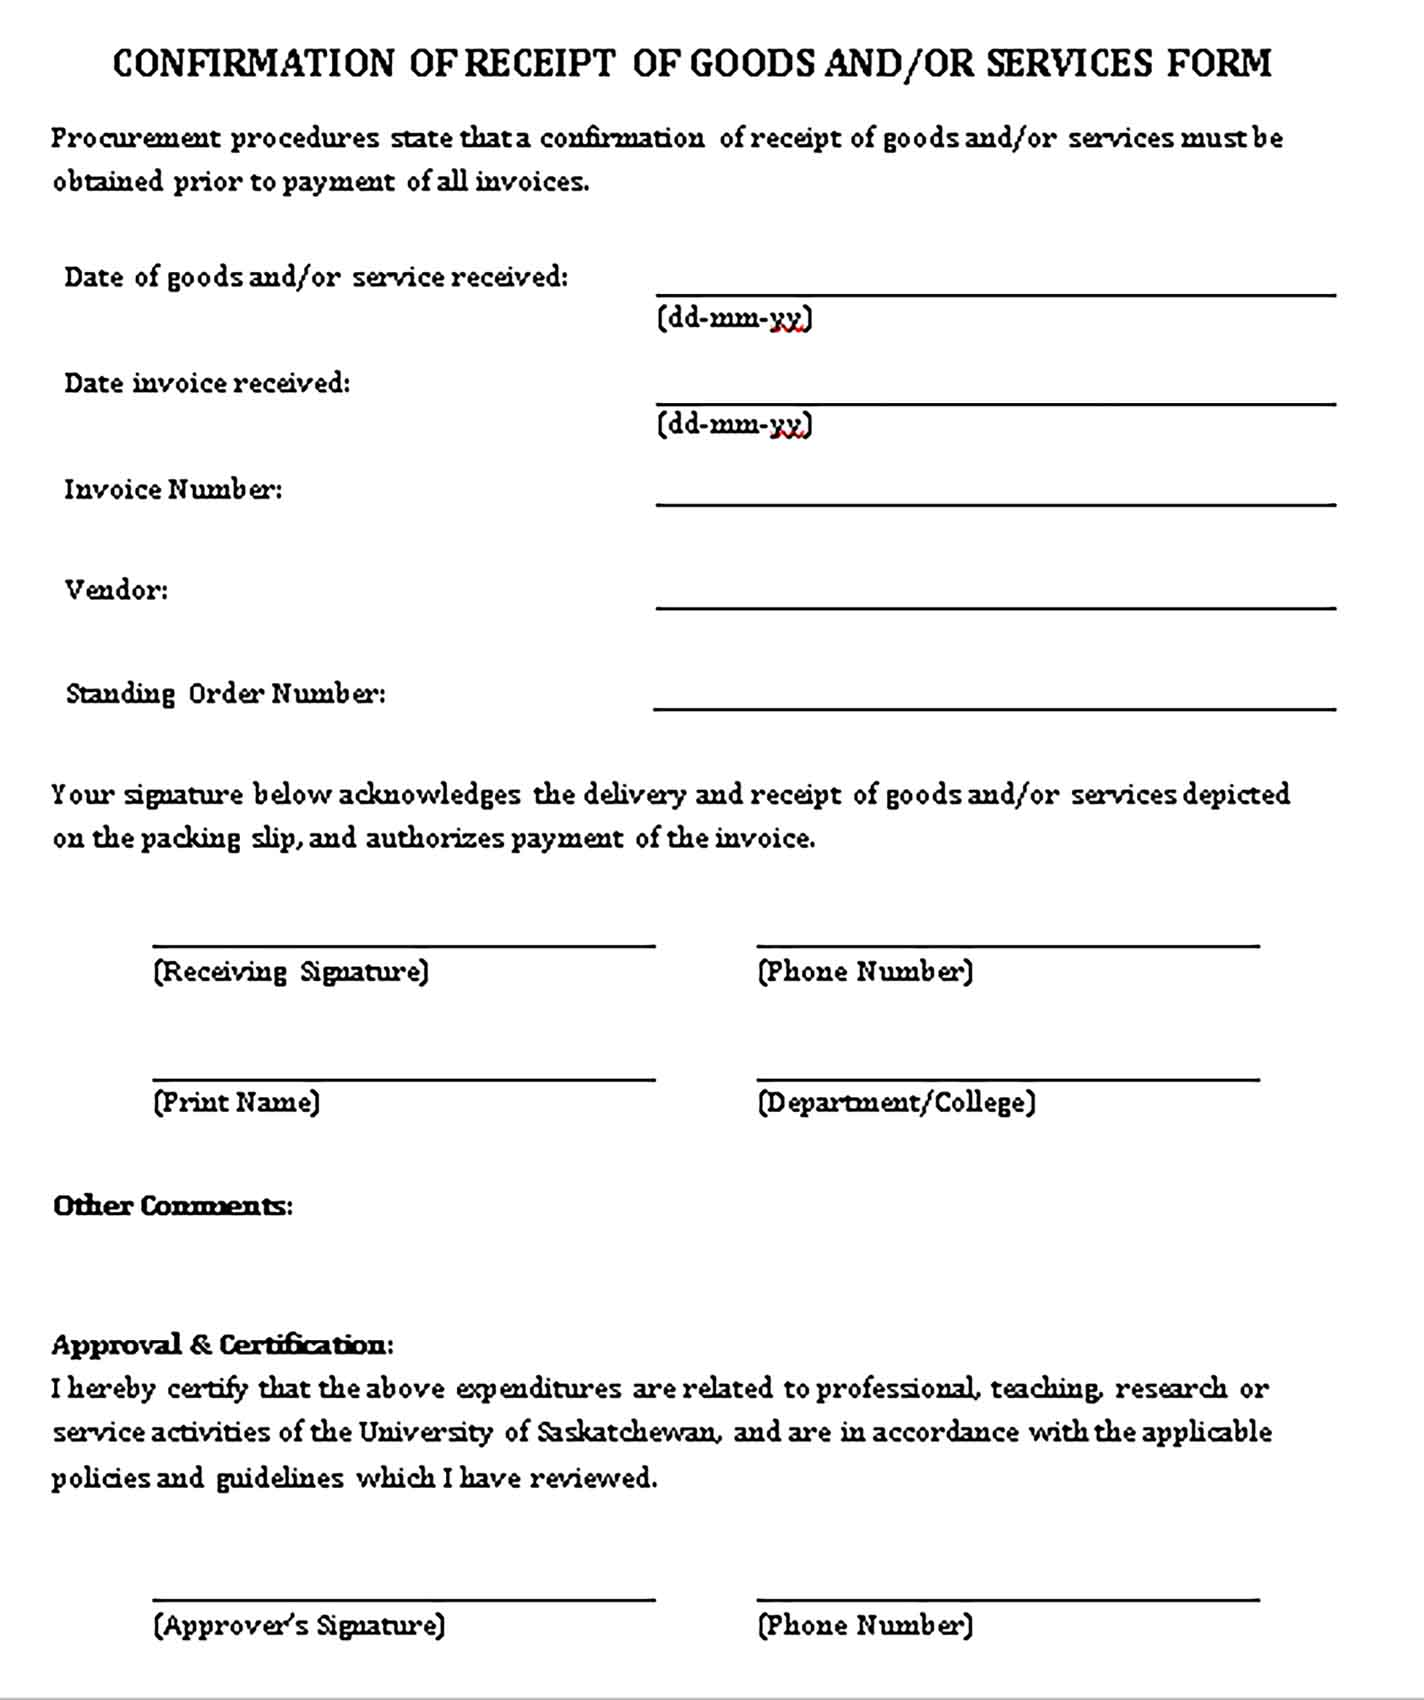 Sample Confirmation of Receipt of Goods and Services Form Templates